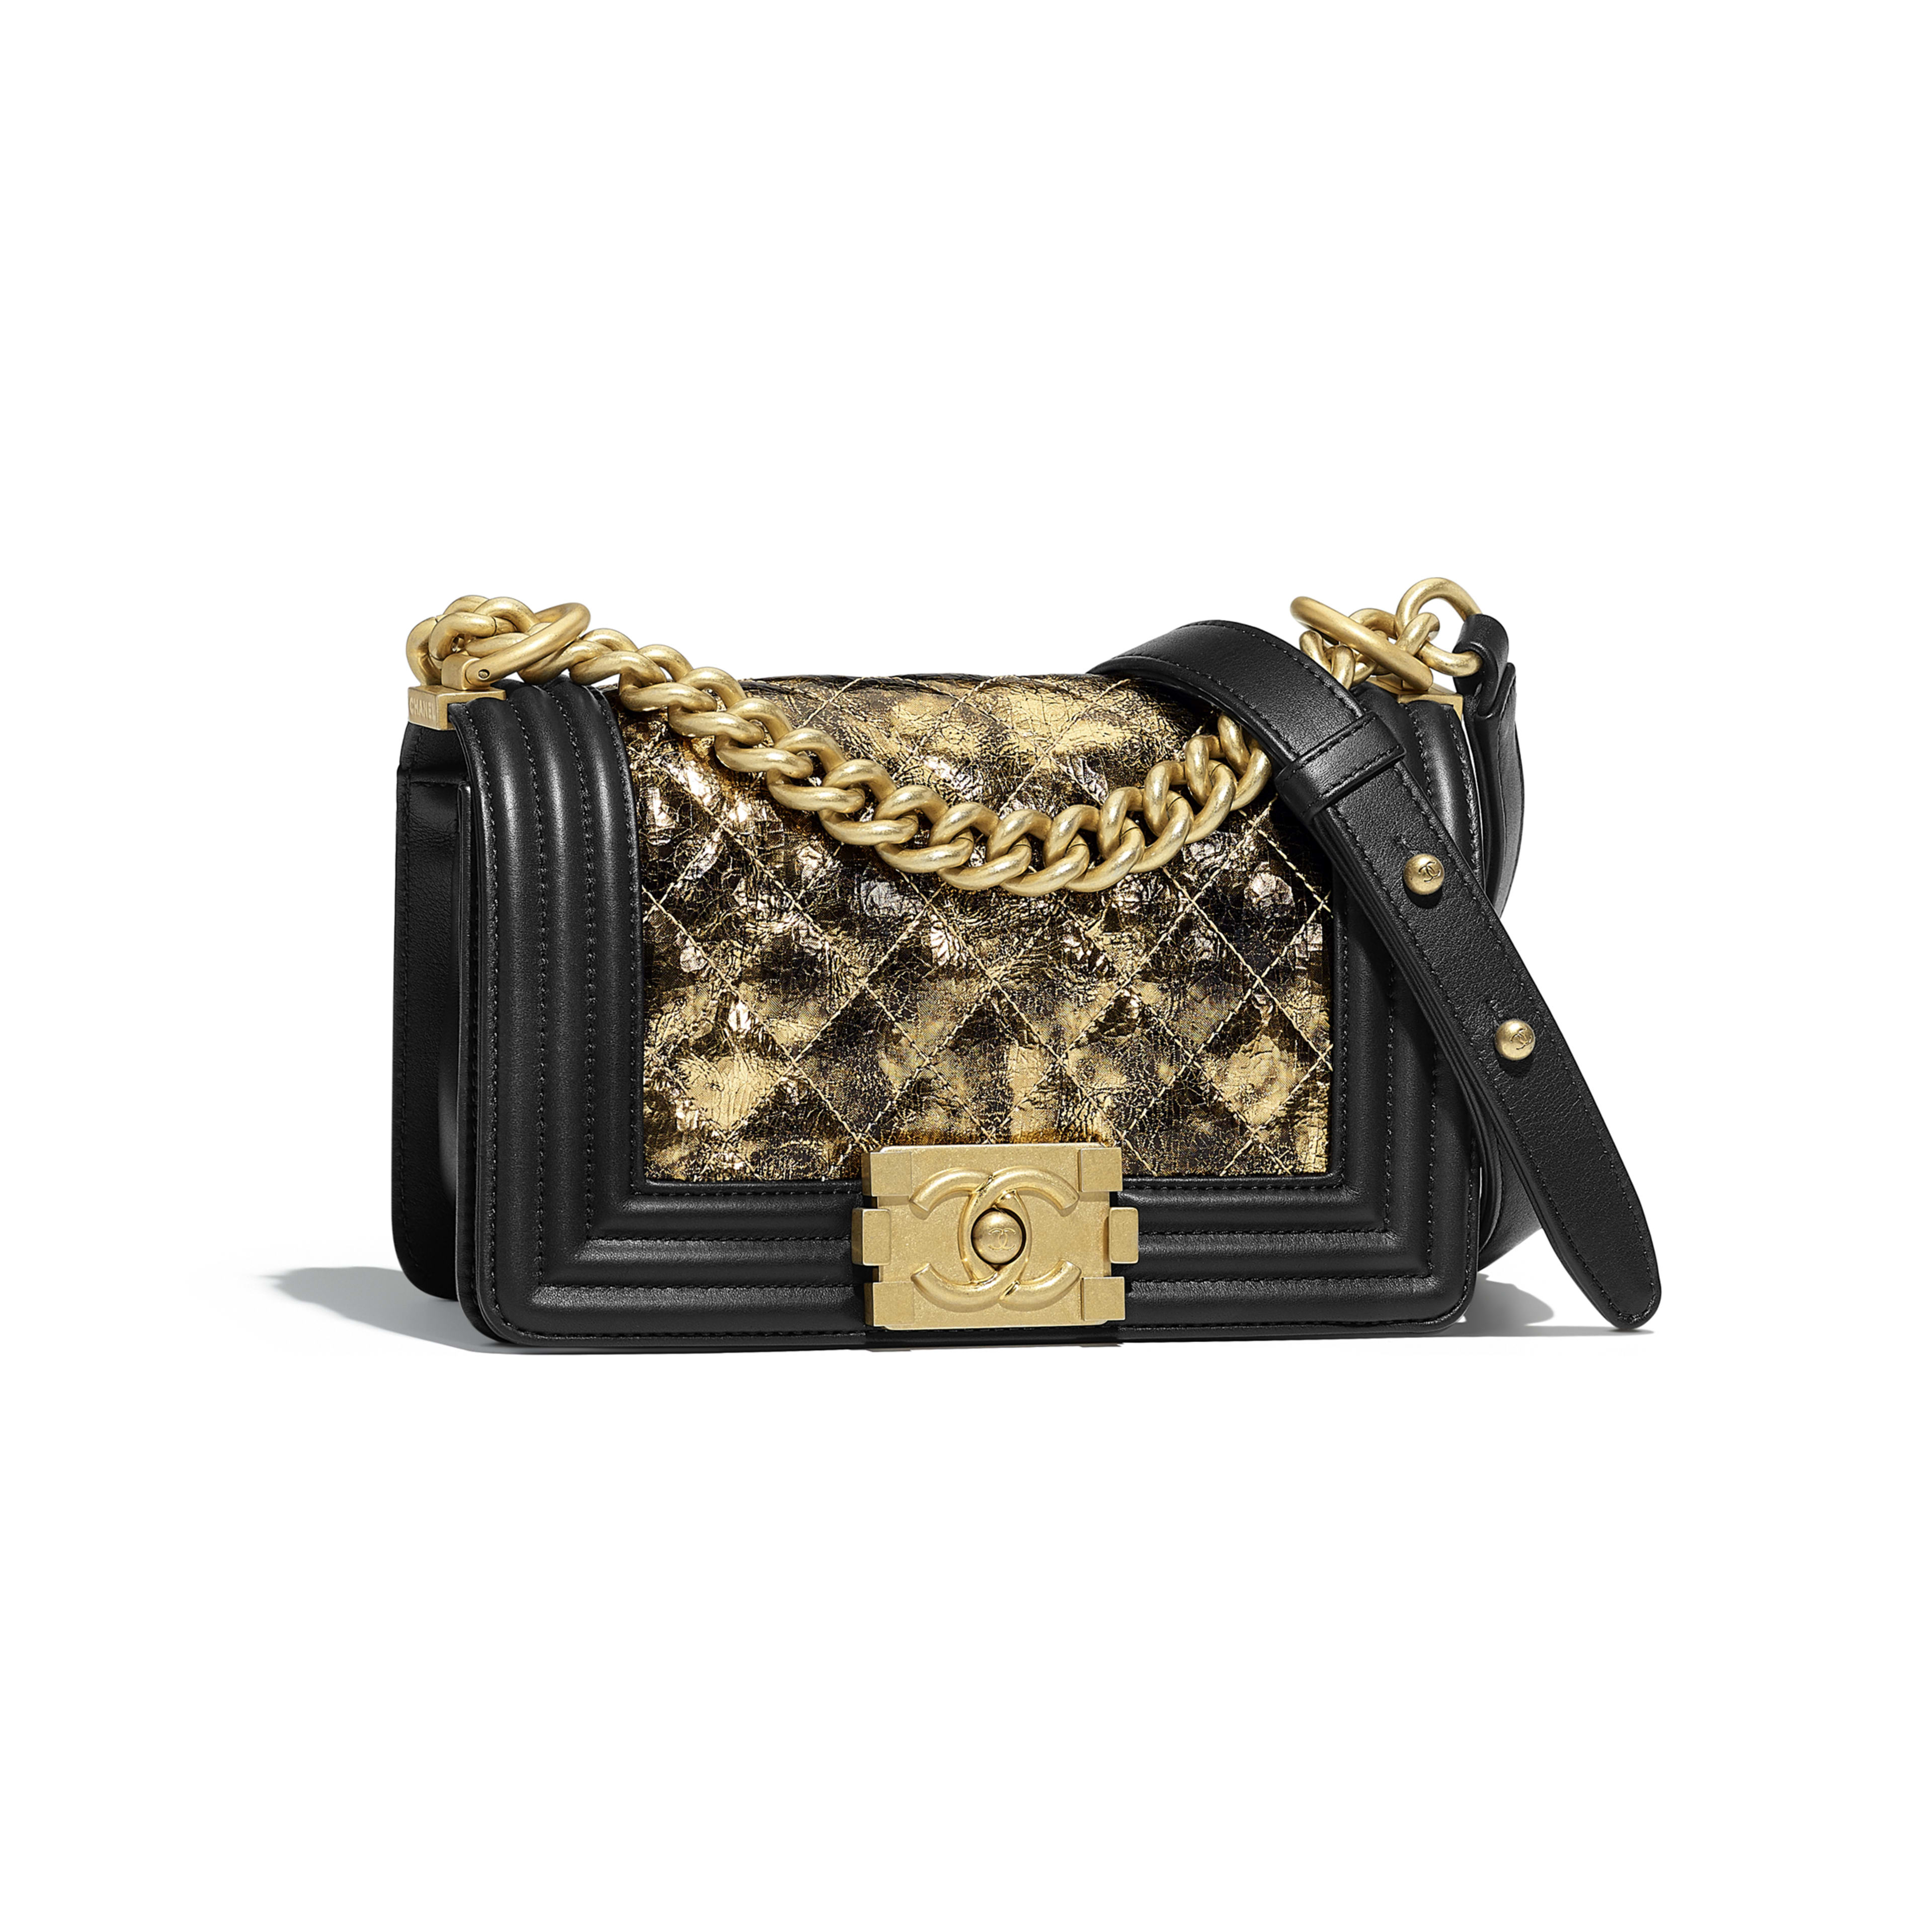 Small BOY CHANEL Handbag - Gold & Black - Metallic Crumpled Goatskin, Calfskin & Gold-Tone Metal - Default view - see full sized version